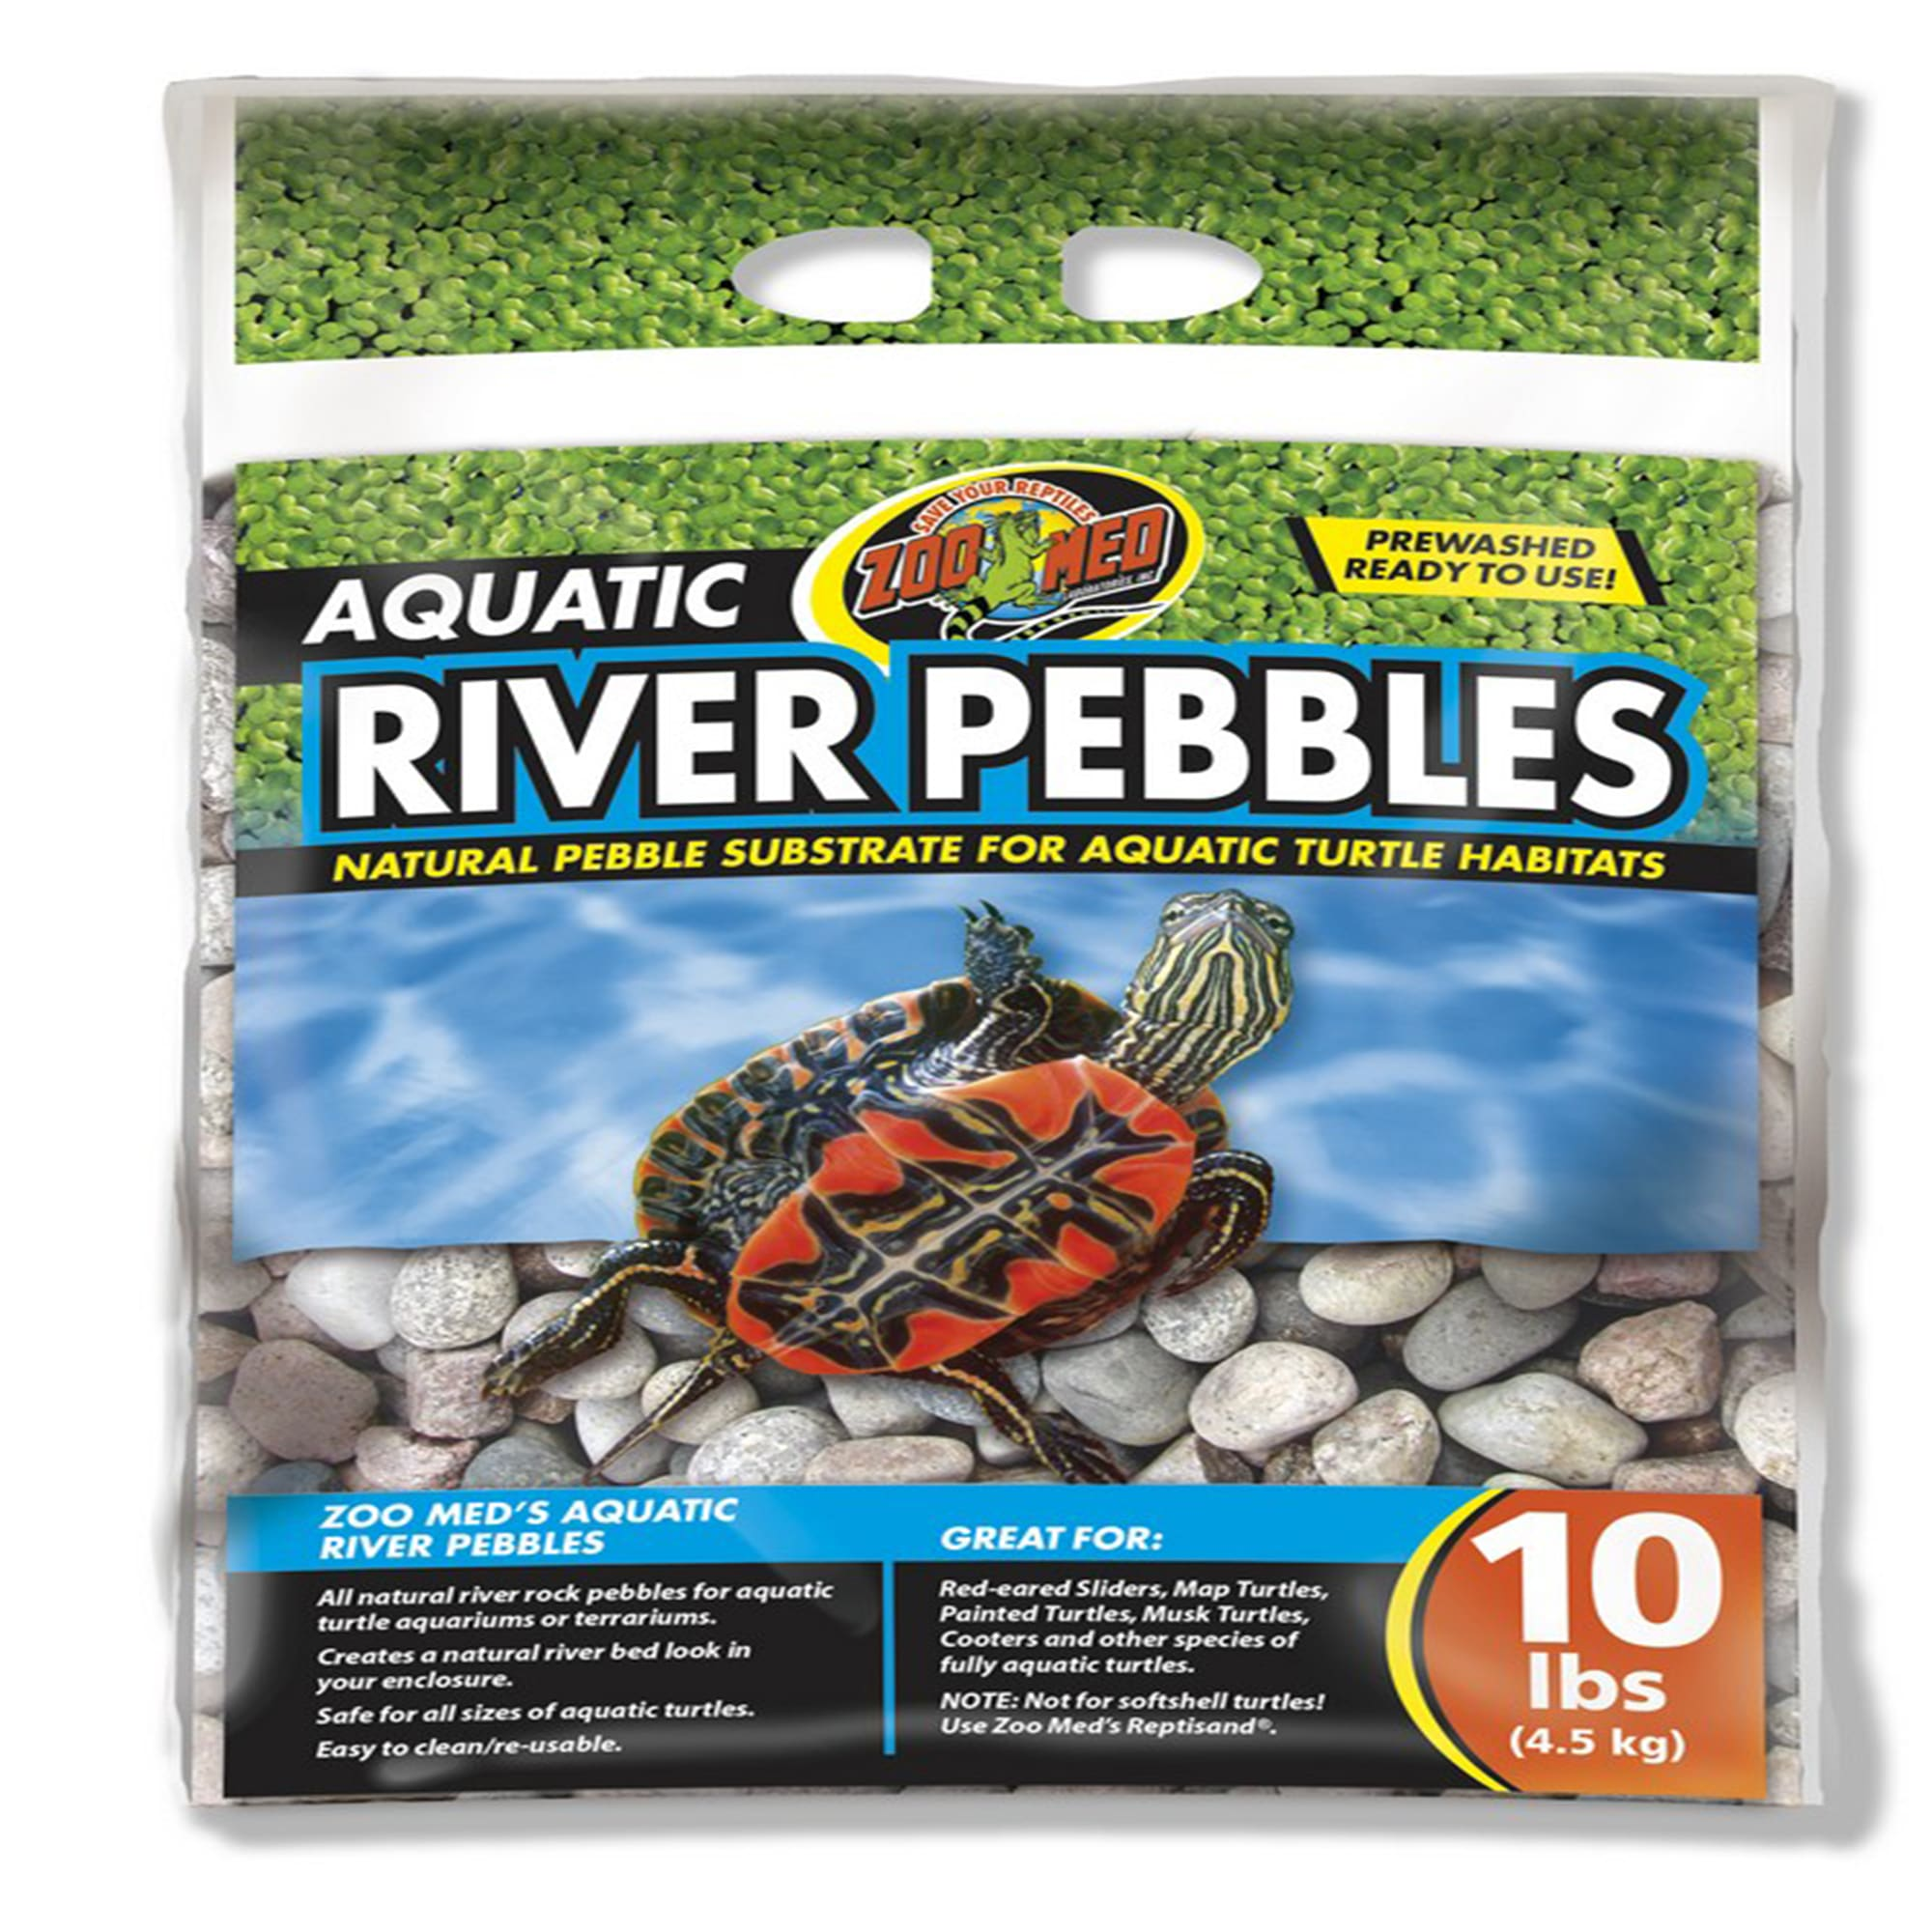 Zoo Med Aquatic River Pebbles for Turtle, 10 lbs.